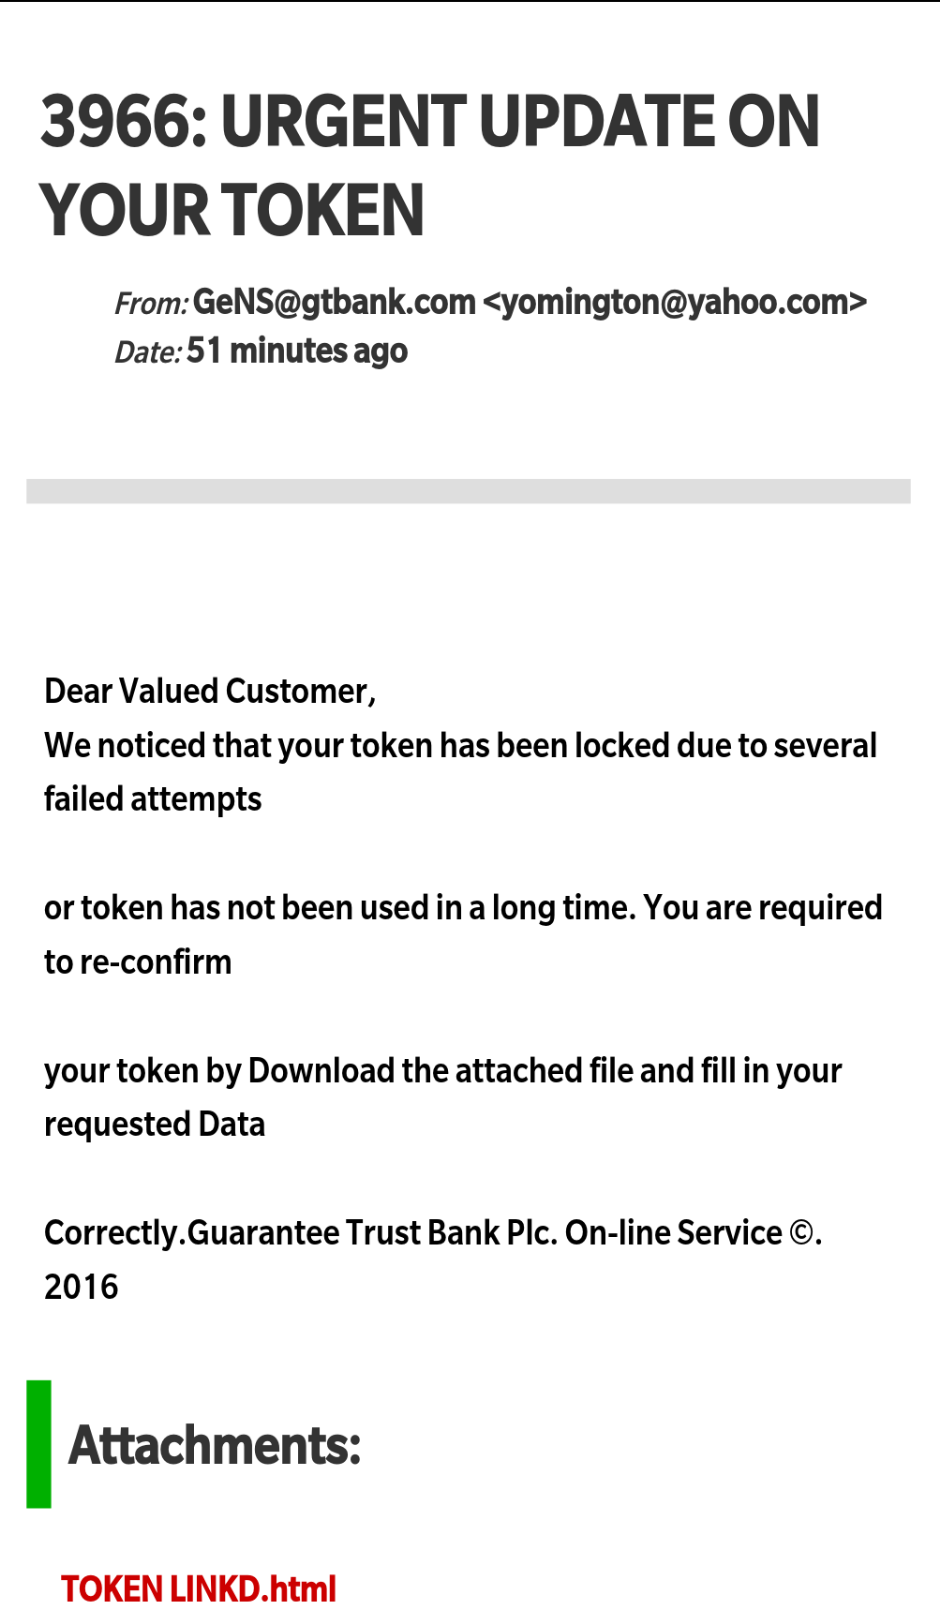 Scam Alert: Do Not Fall For This Email That Claims to be